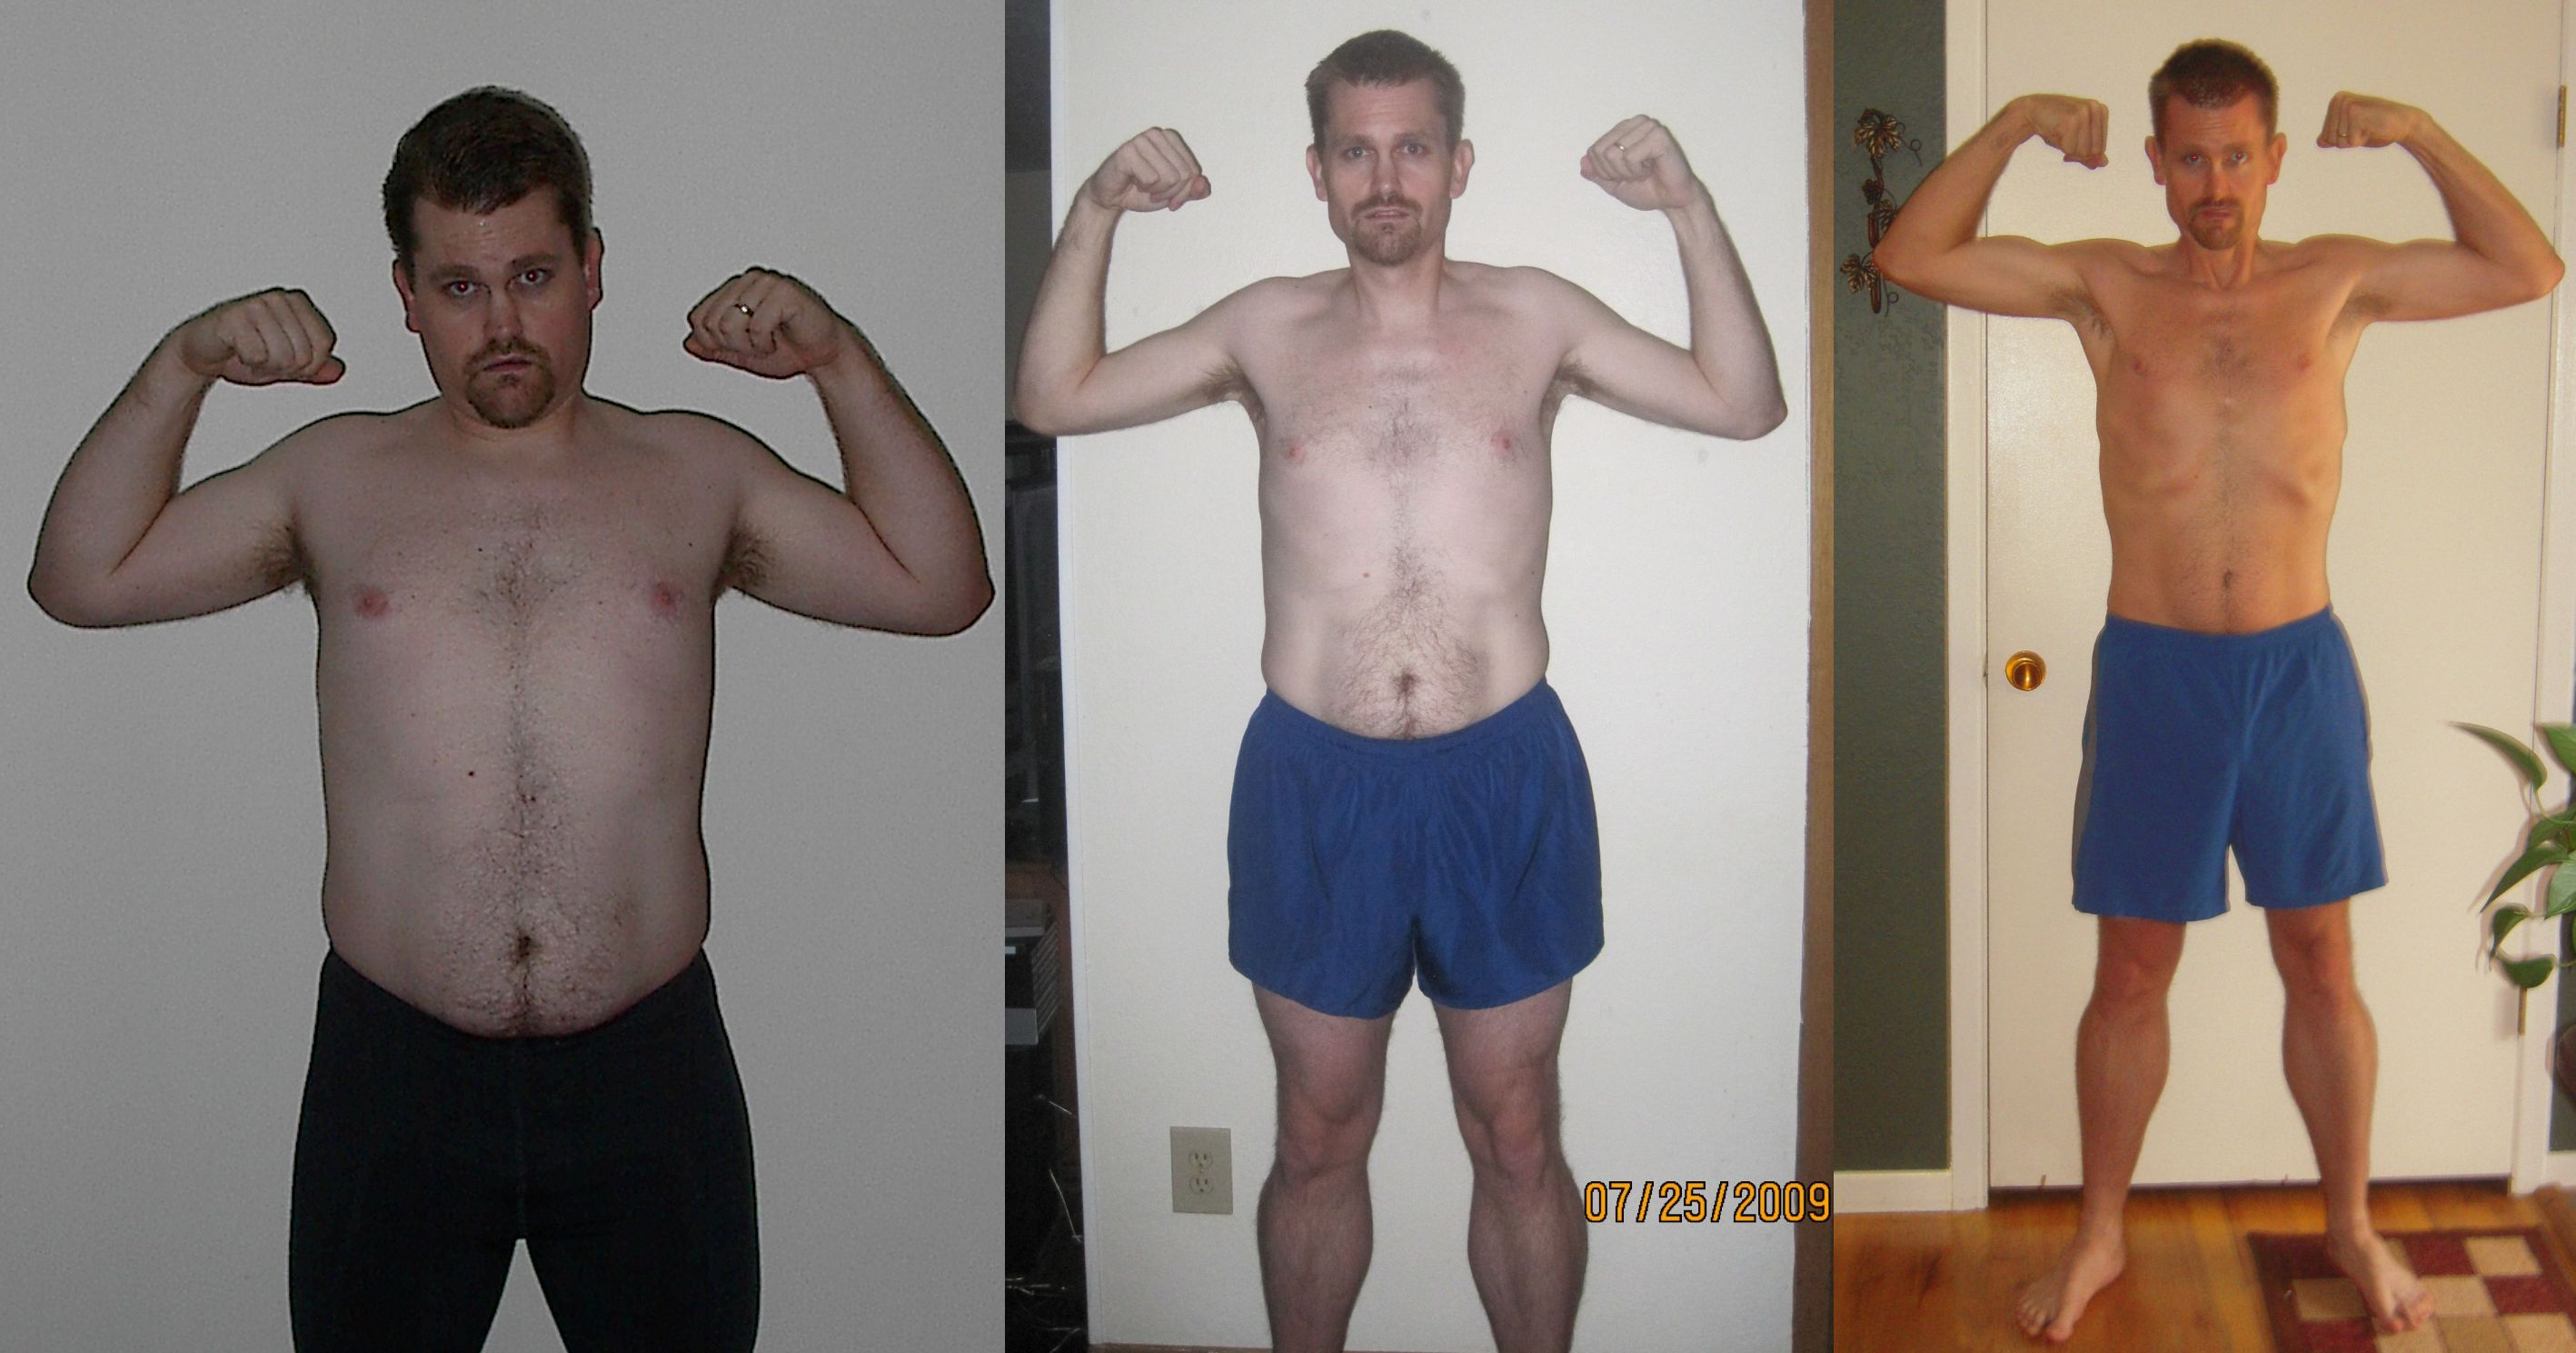 P90x Doubles My p90x day 1 and day 30.